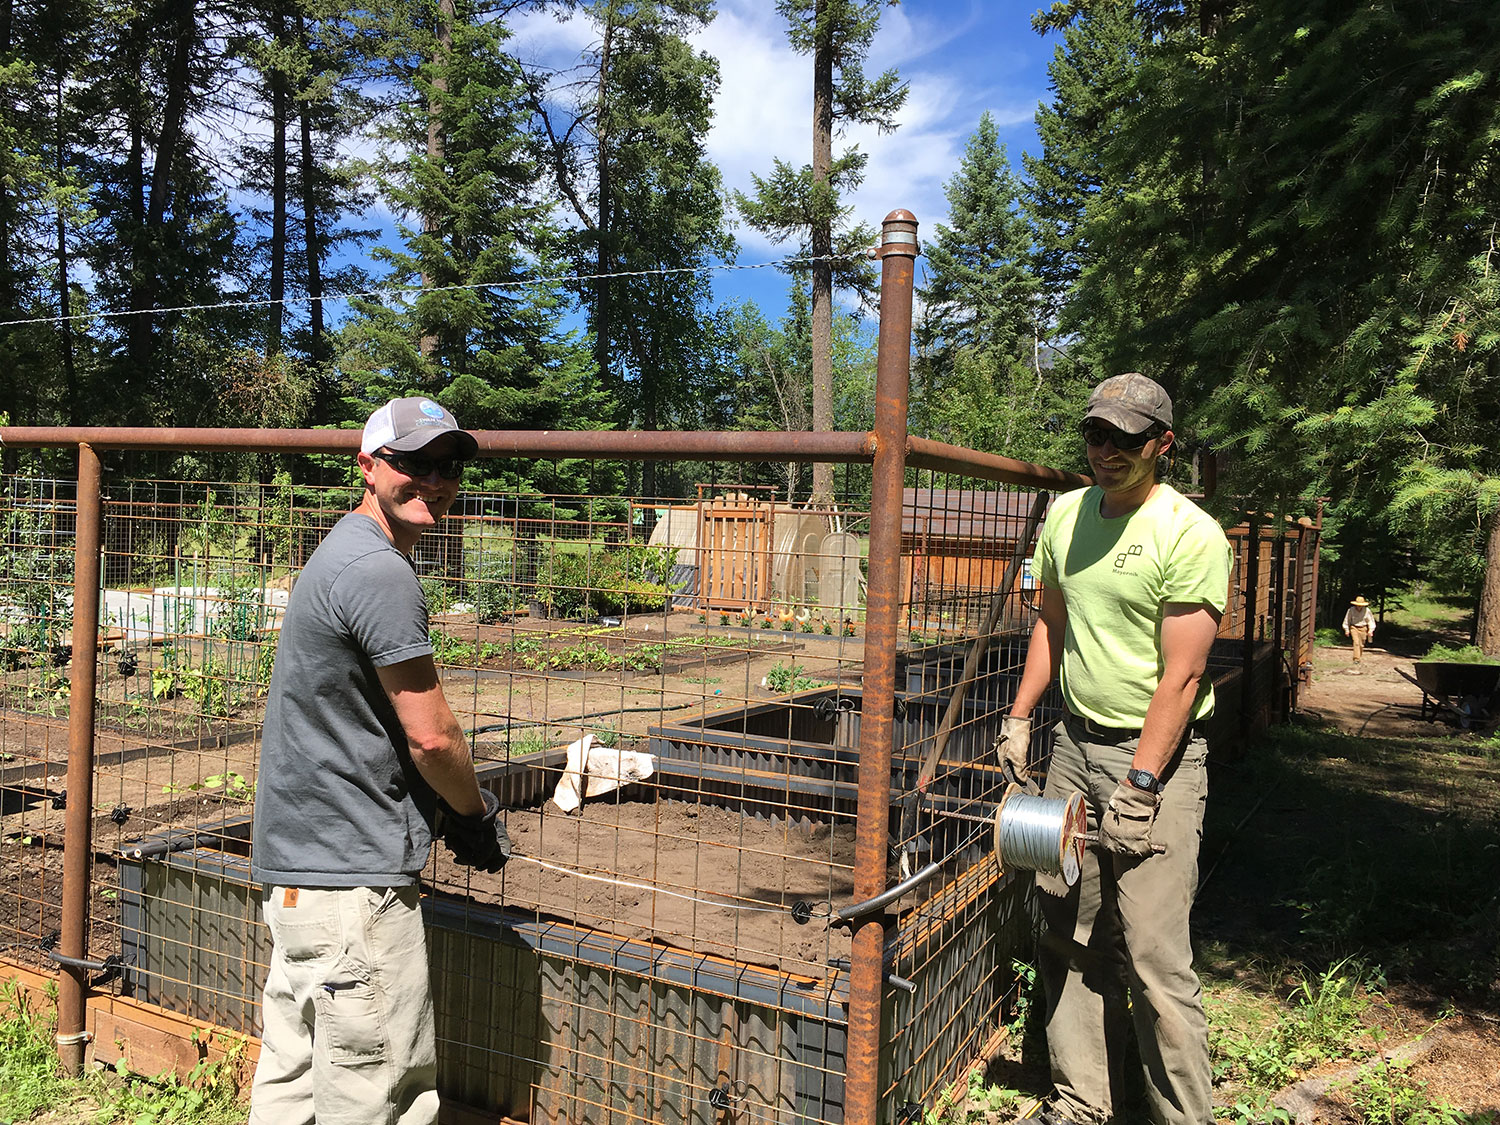 Even as Mike and Luke try to keep the tension around the challenging corners, their grins are apt proof that building a bear fence is also FUN!